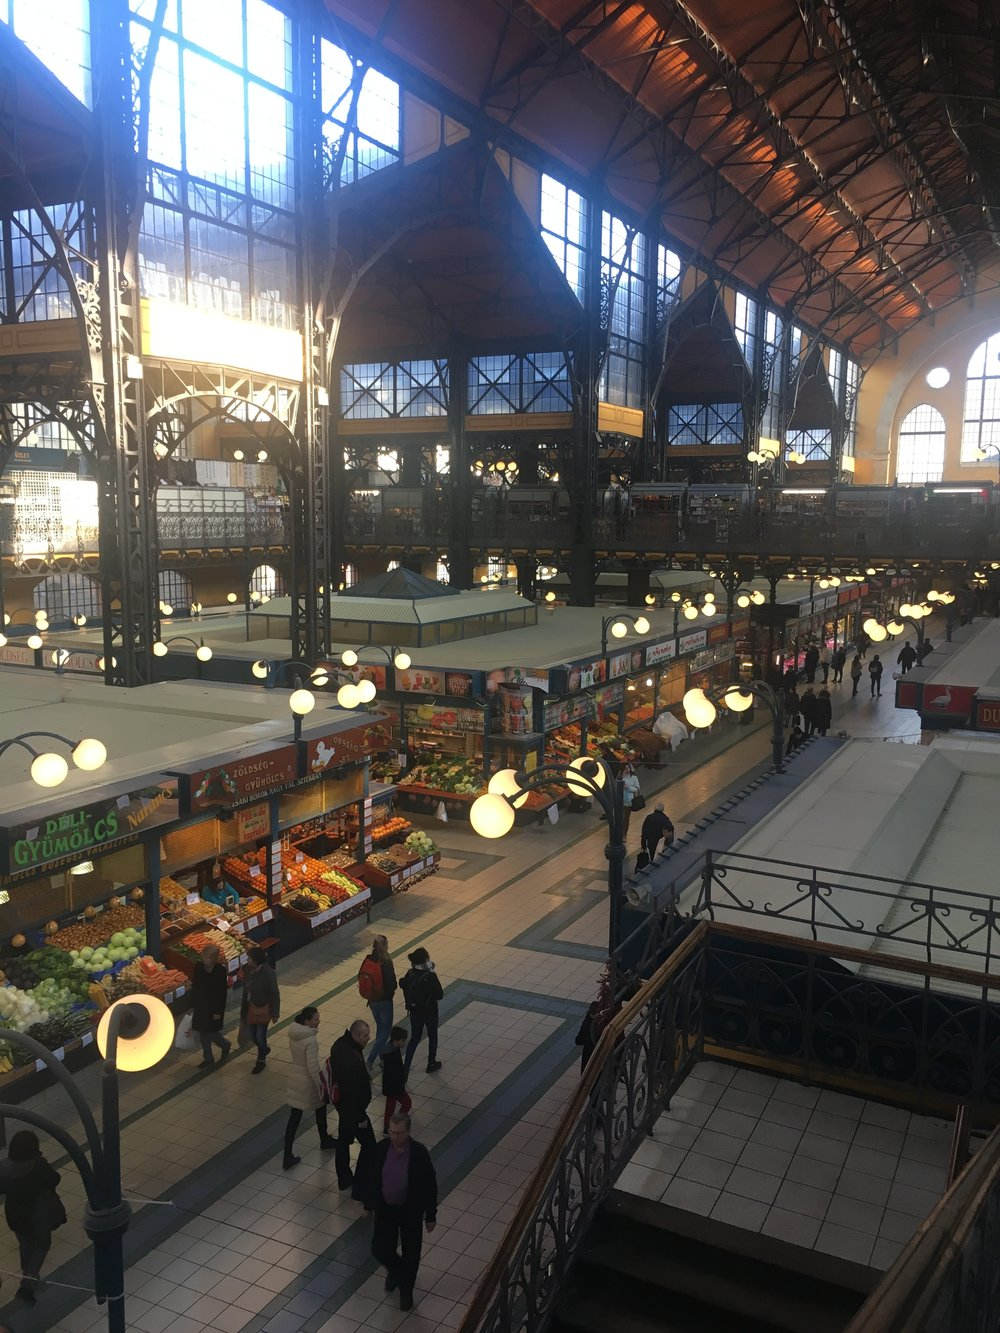 The Great Market Hall.